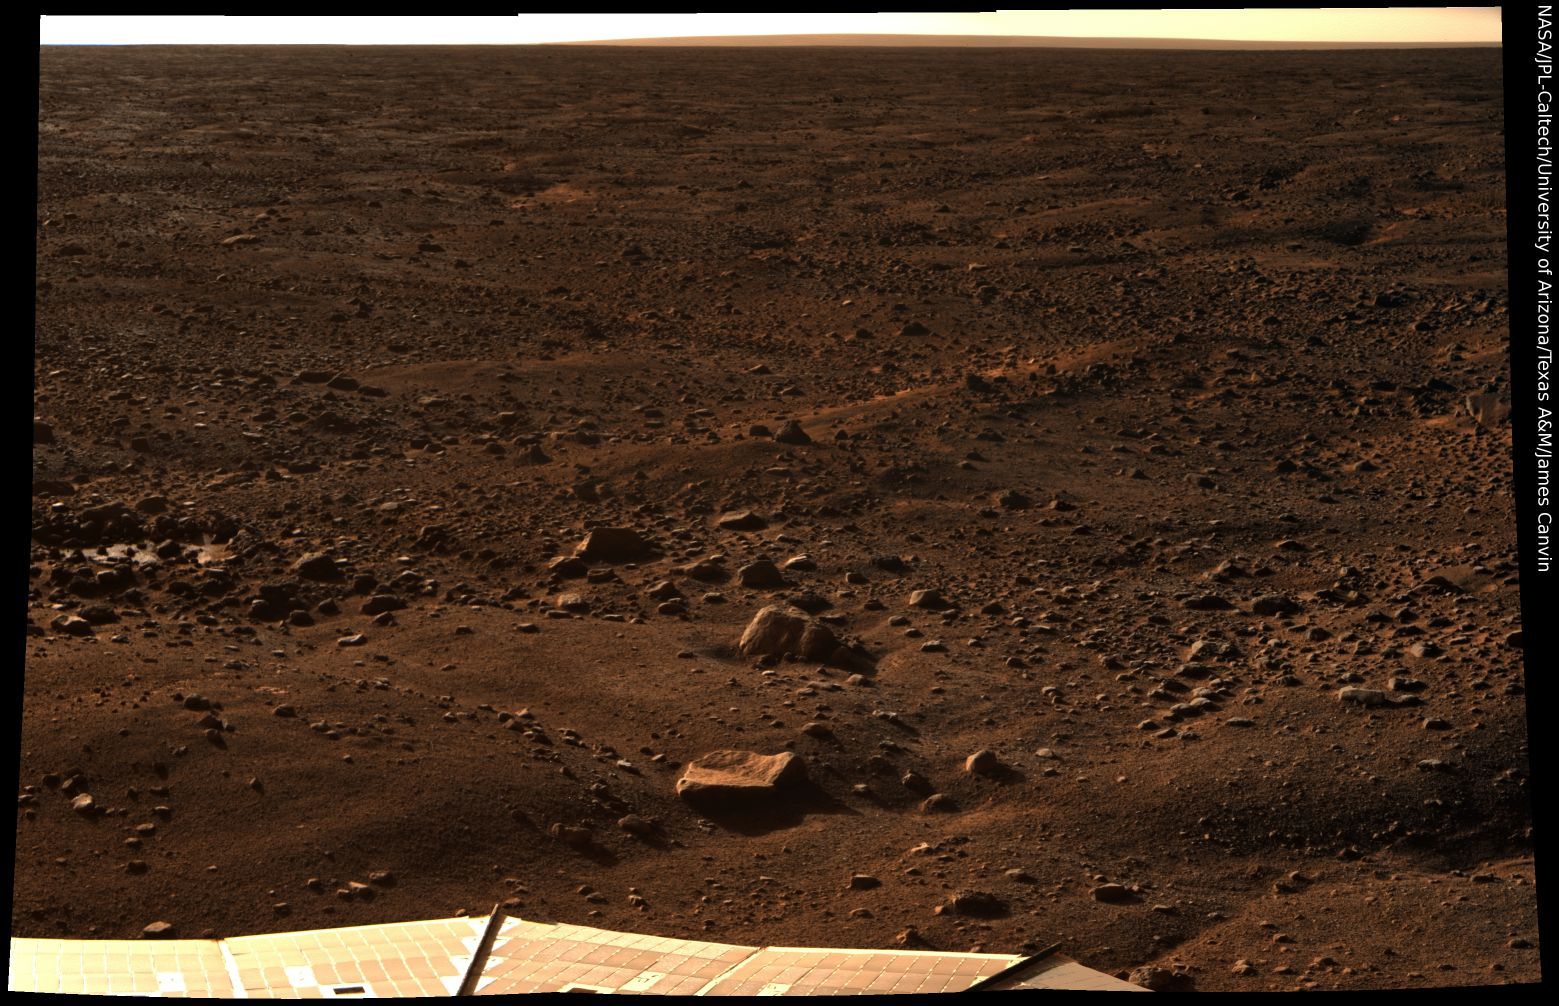 Phoenix Color Image of the Martian Surface at the Pole